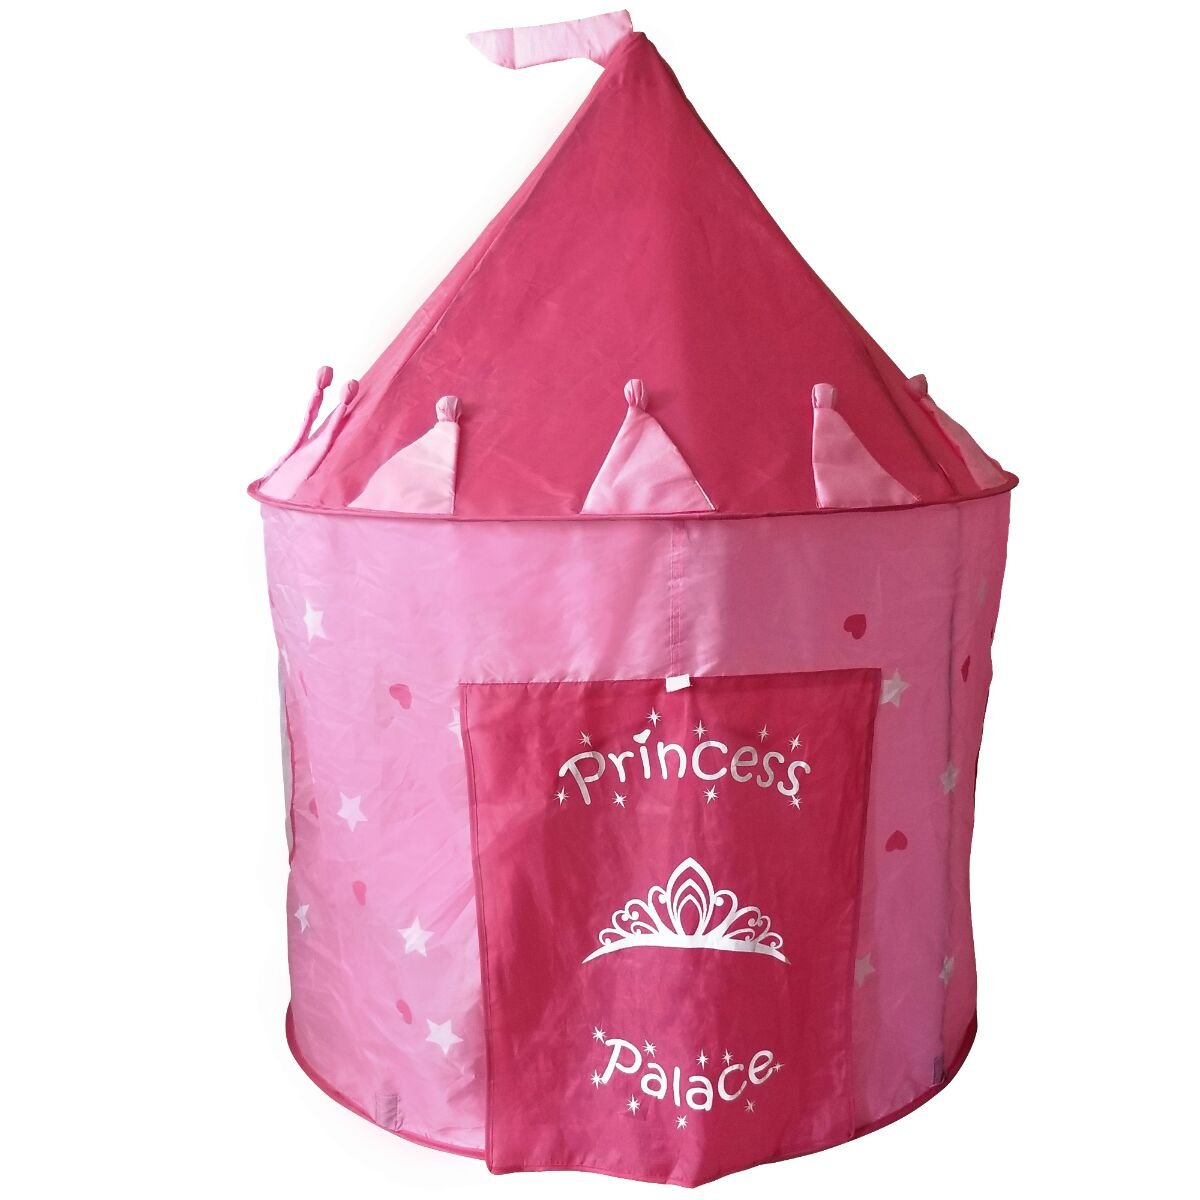 Kids Toy Play Tent For Girls | Pink Princess Palace Castle ...